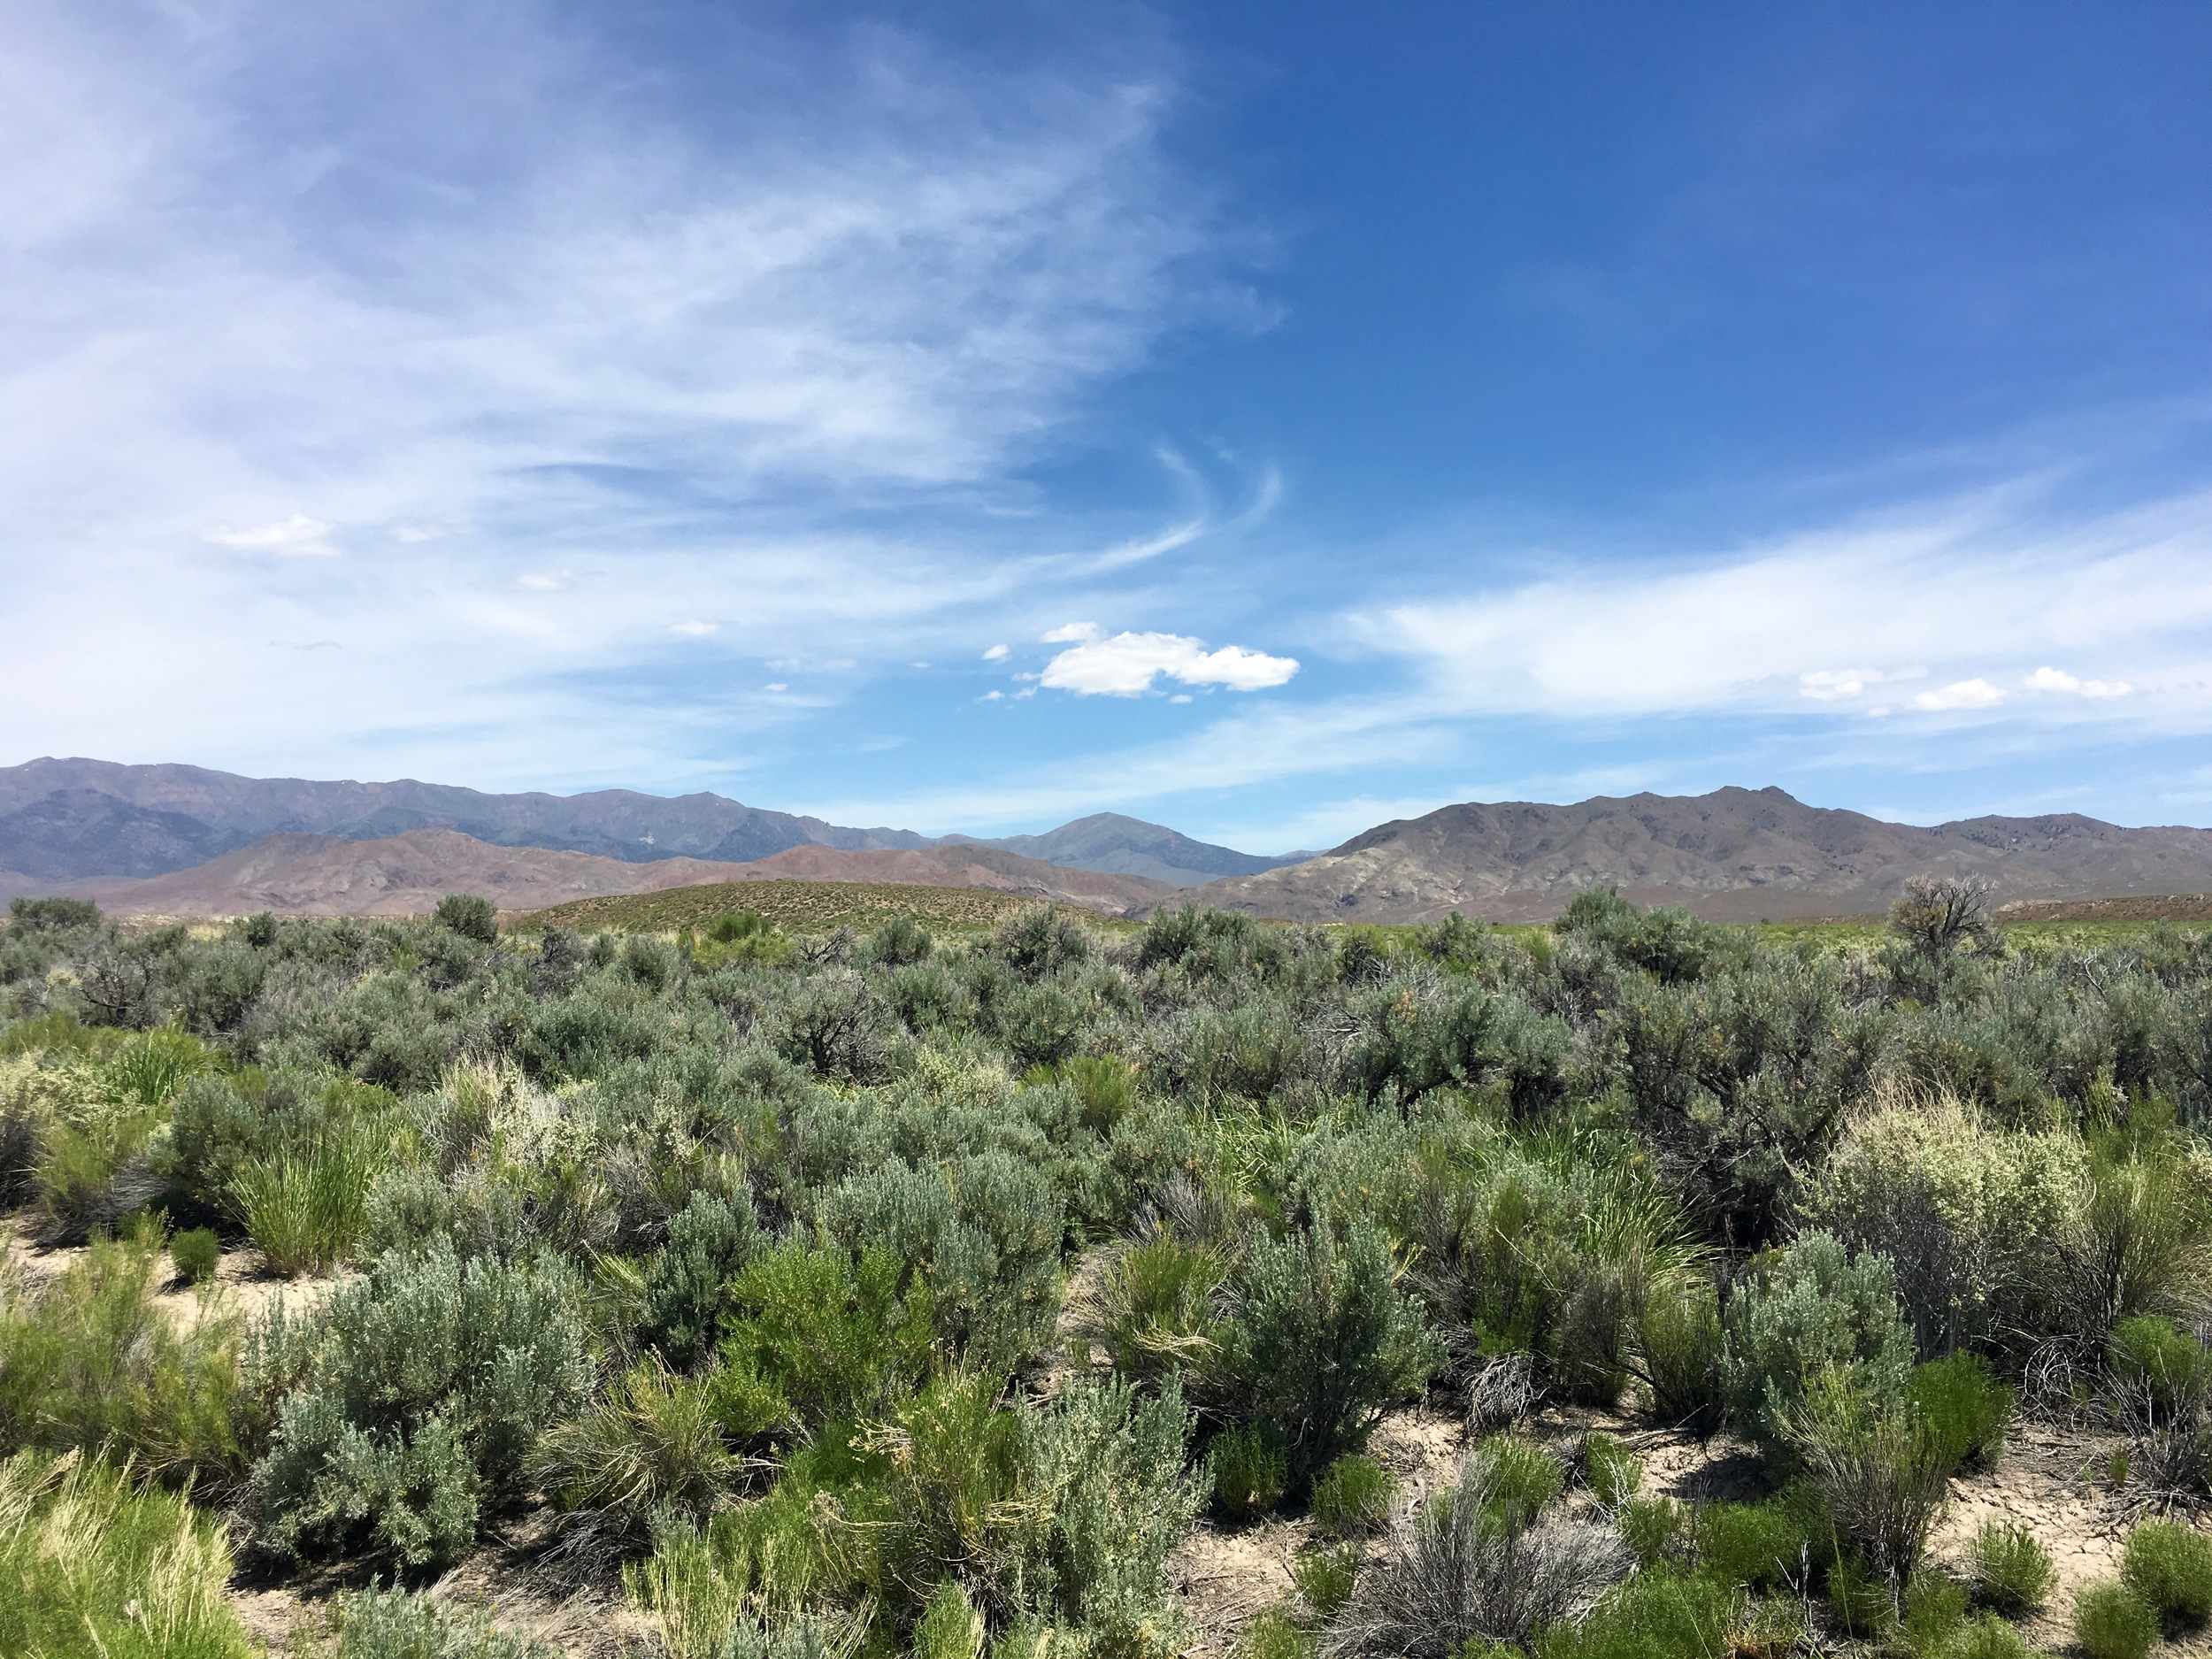 The land west of Fallon has a lot of sagebrush - when i went through the smells were amazing.